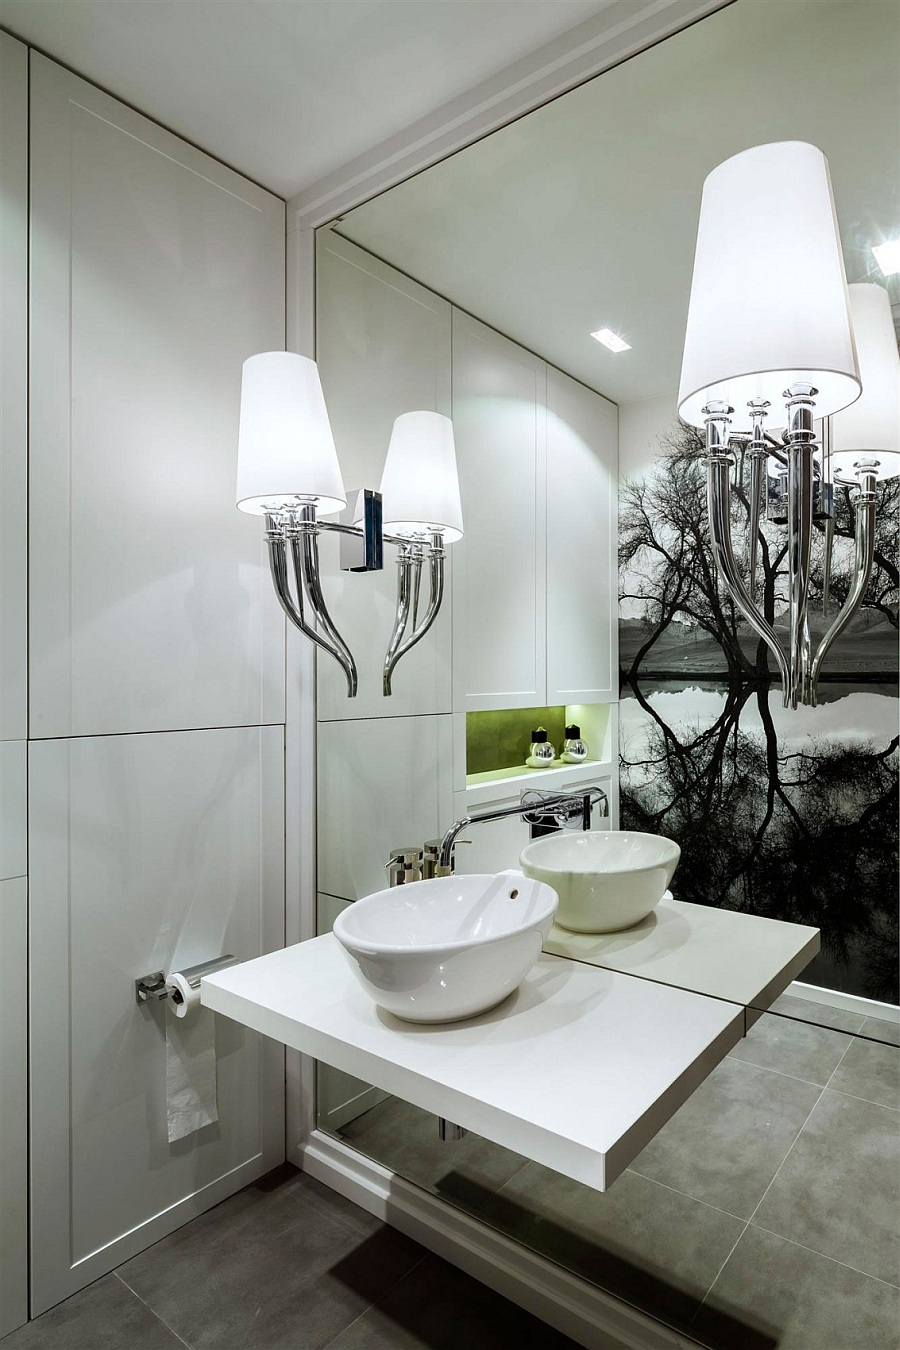 Fabulous sink idea for the contemporary bathroom